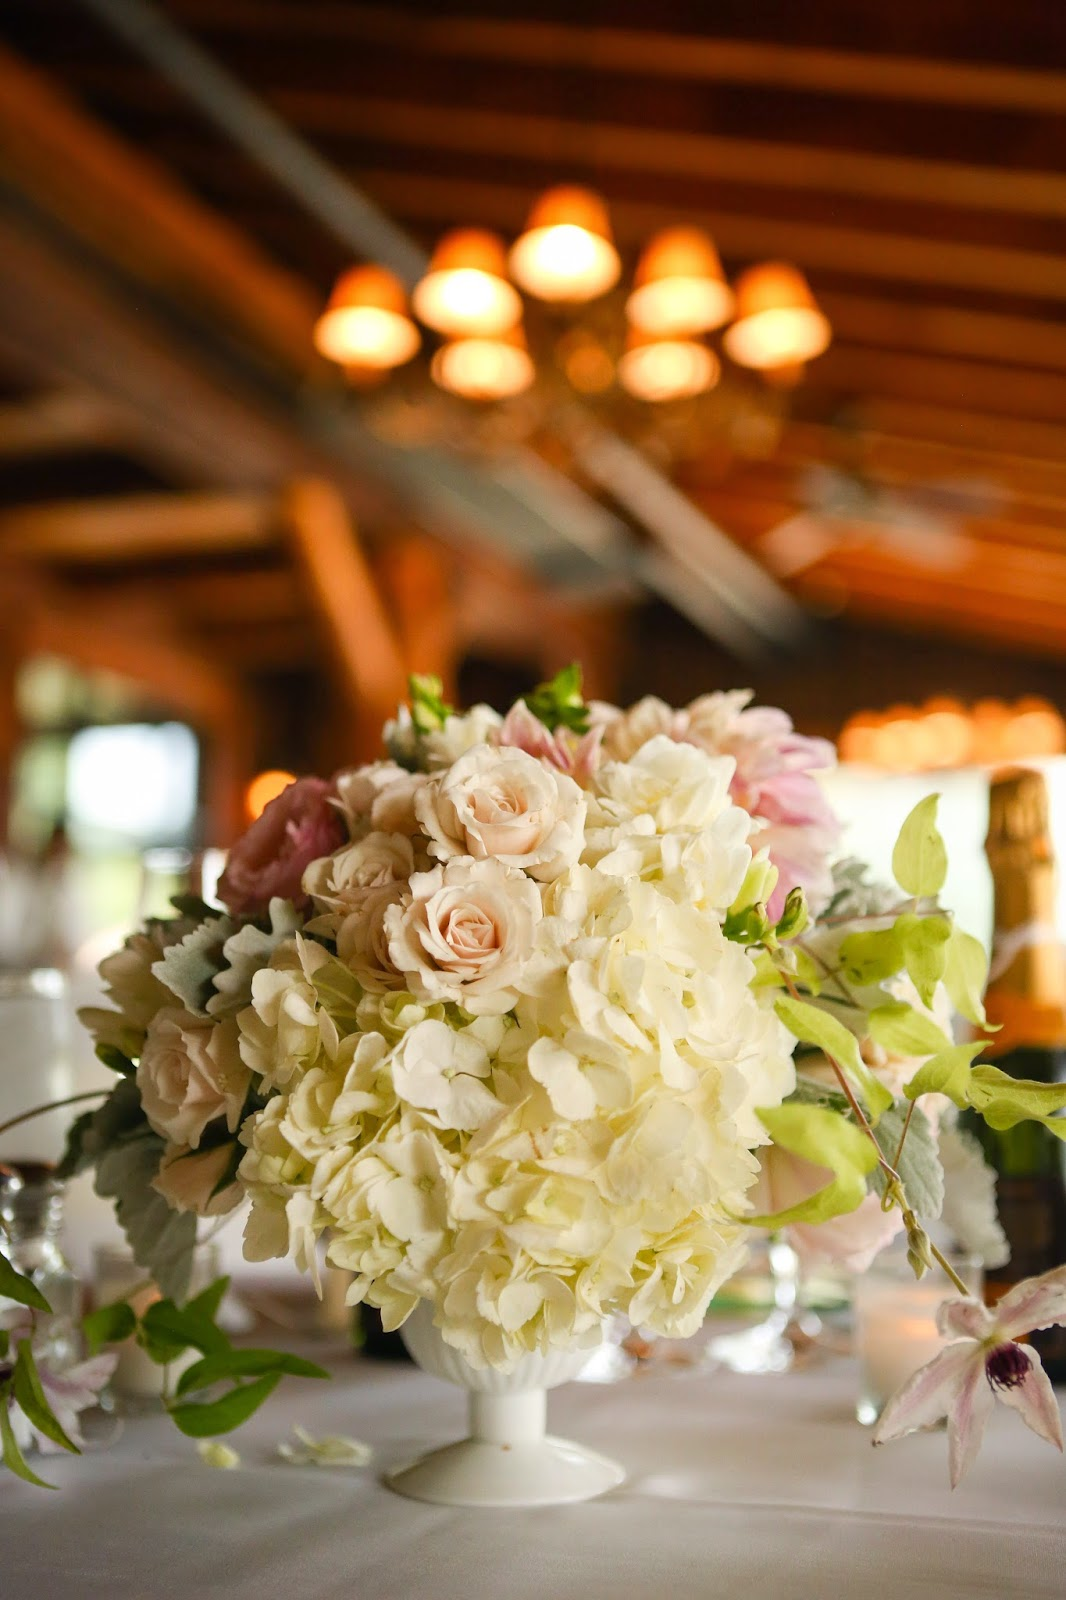 Lake Placid Wedding - The Whiteface Lodge Wedding - Table Centerpiece - Upstate NY Wedding - Splendid Stems Floral Designs